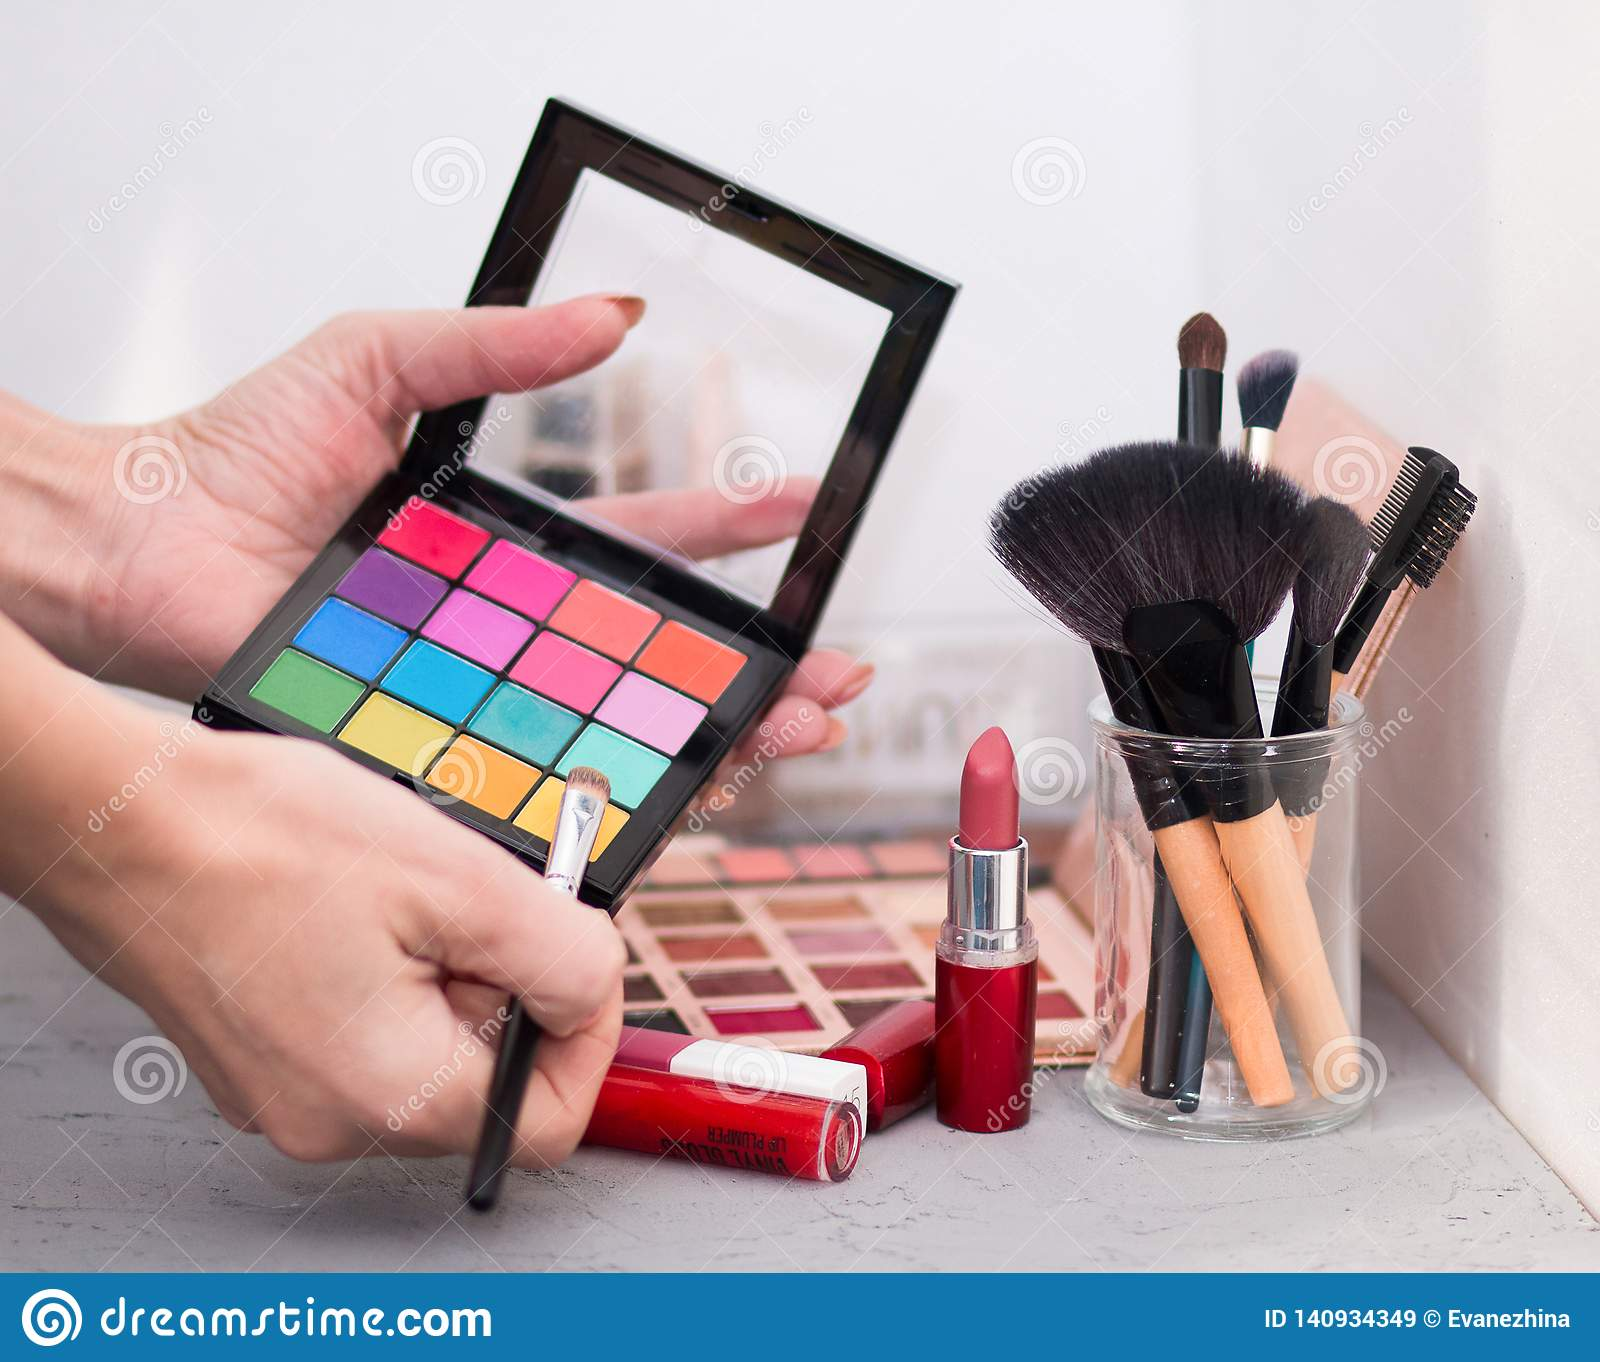 Professional cosmetic brushes, shadows, lipsticks and sponges on a gray table